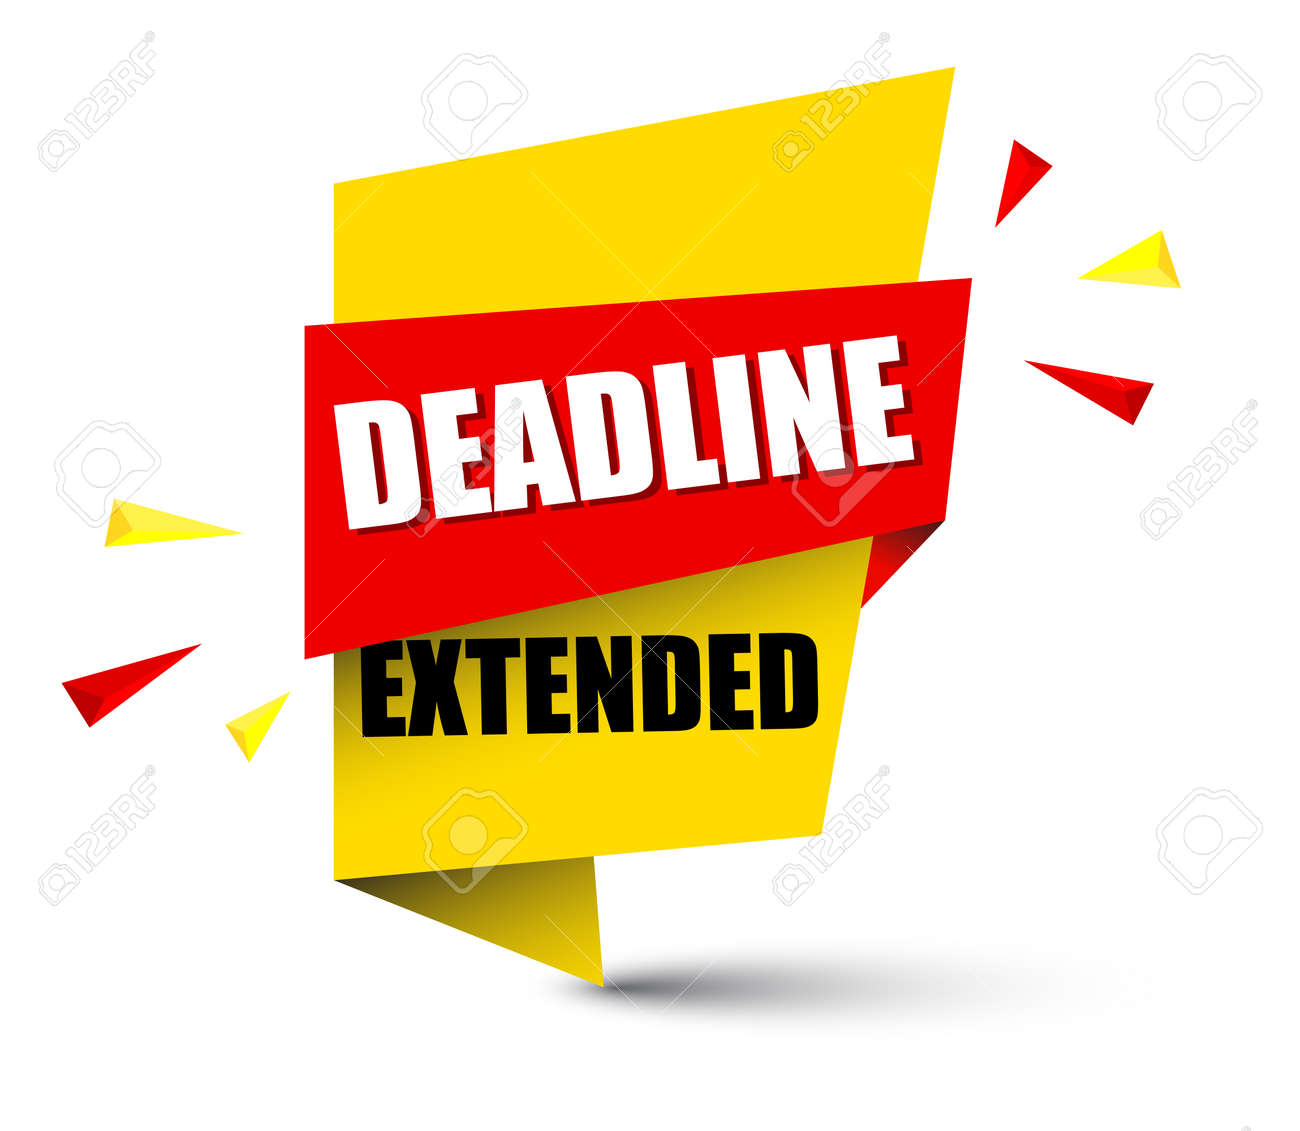 Banner Deadline Extended Icon Illustration On White Background. Royalty  Free Cliparts, Vectors, And Stock Illustration. Image 95671623.